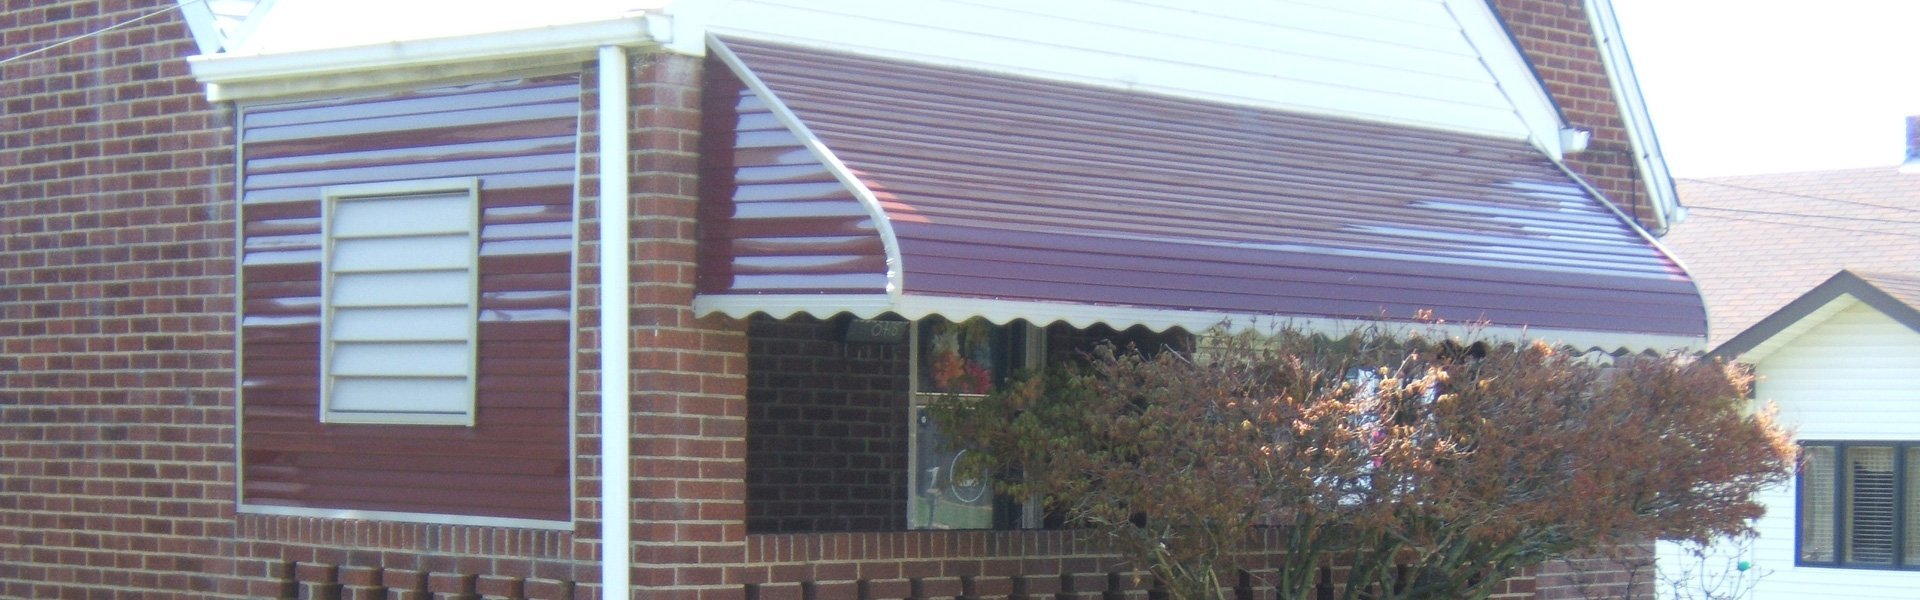 Awnings And Beyond Awning Services North Versailles Pa